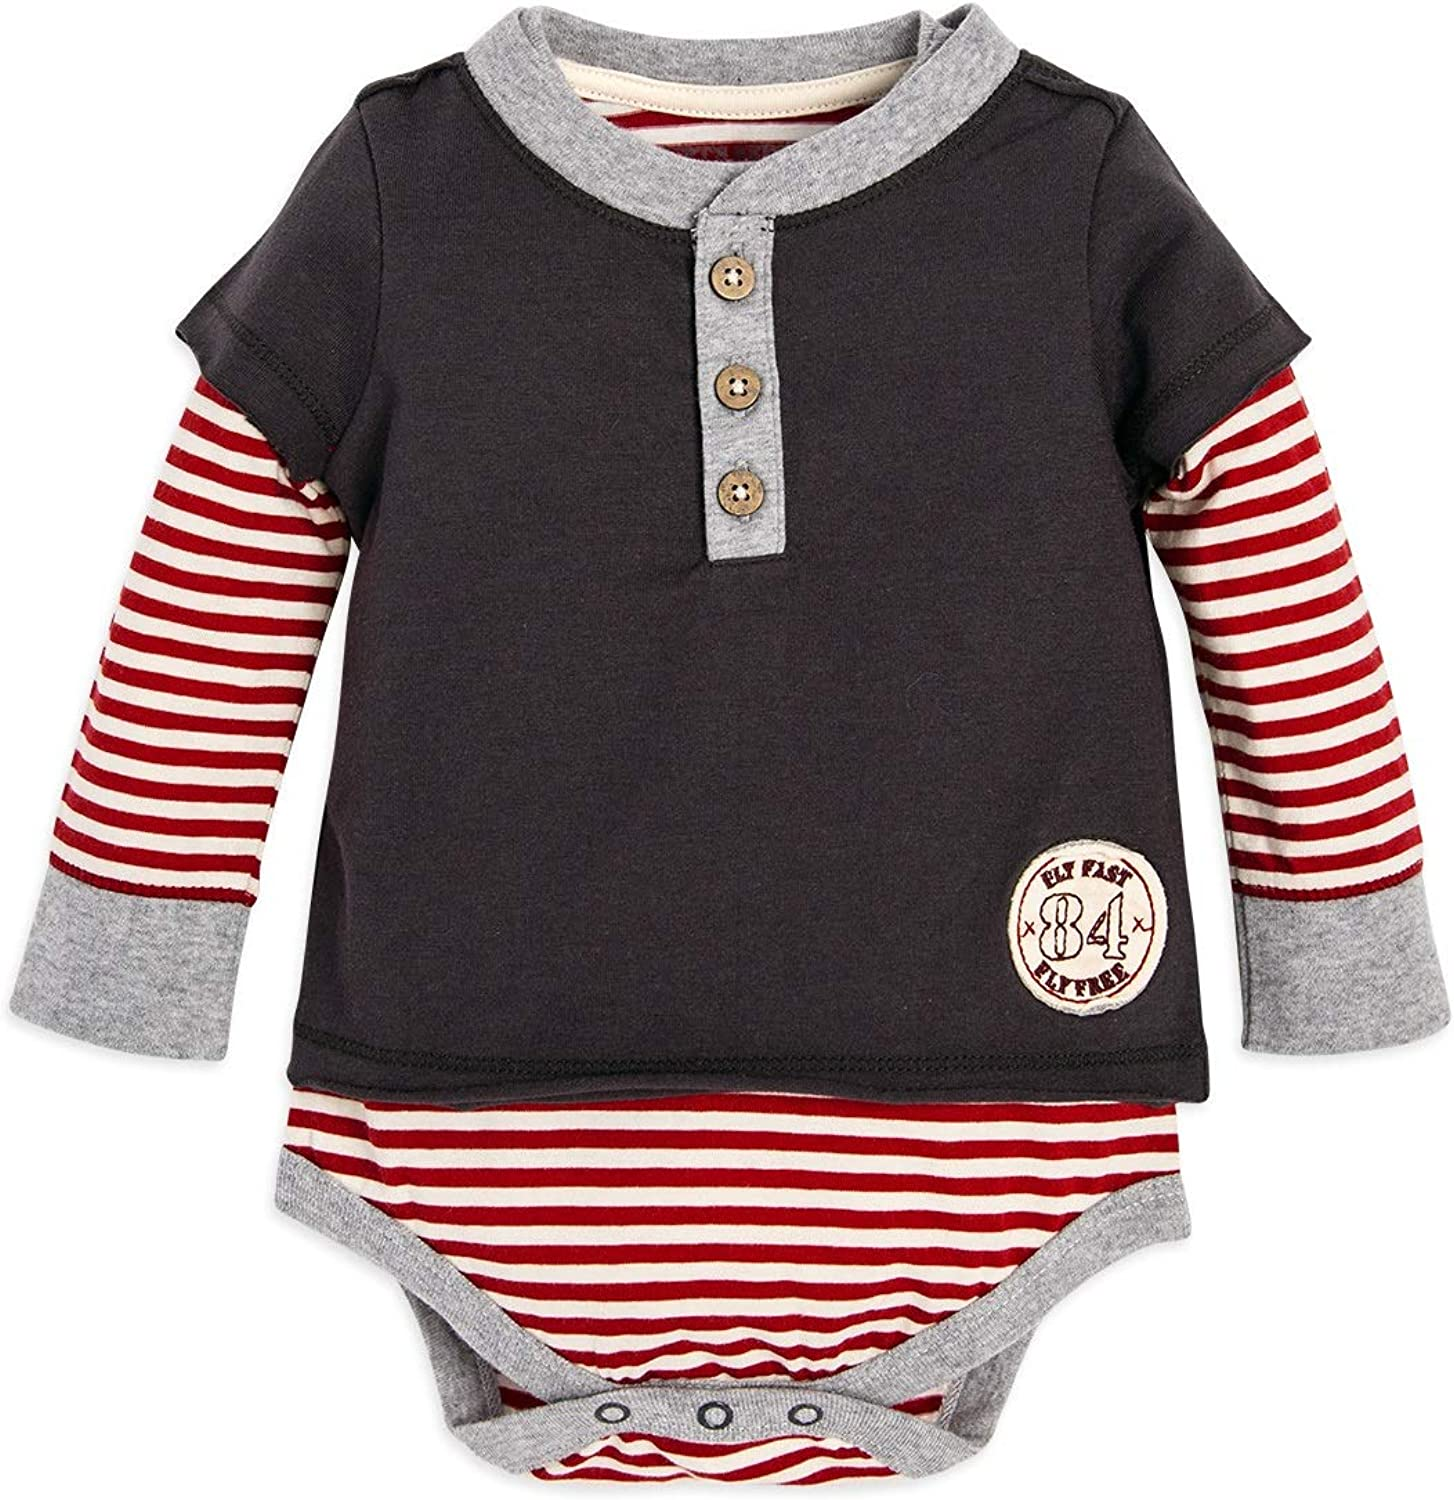 100/% Organic Cotton 5-Pack Short /& Long Sleeve One-Pieces Burts Bees Baby Unisex Baby Bodysuits